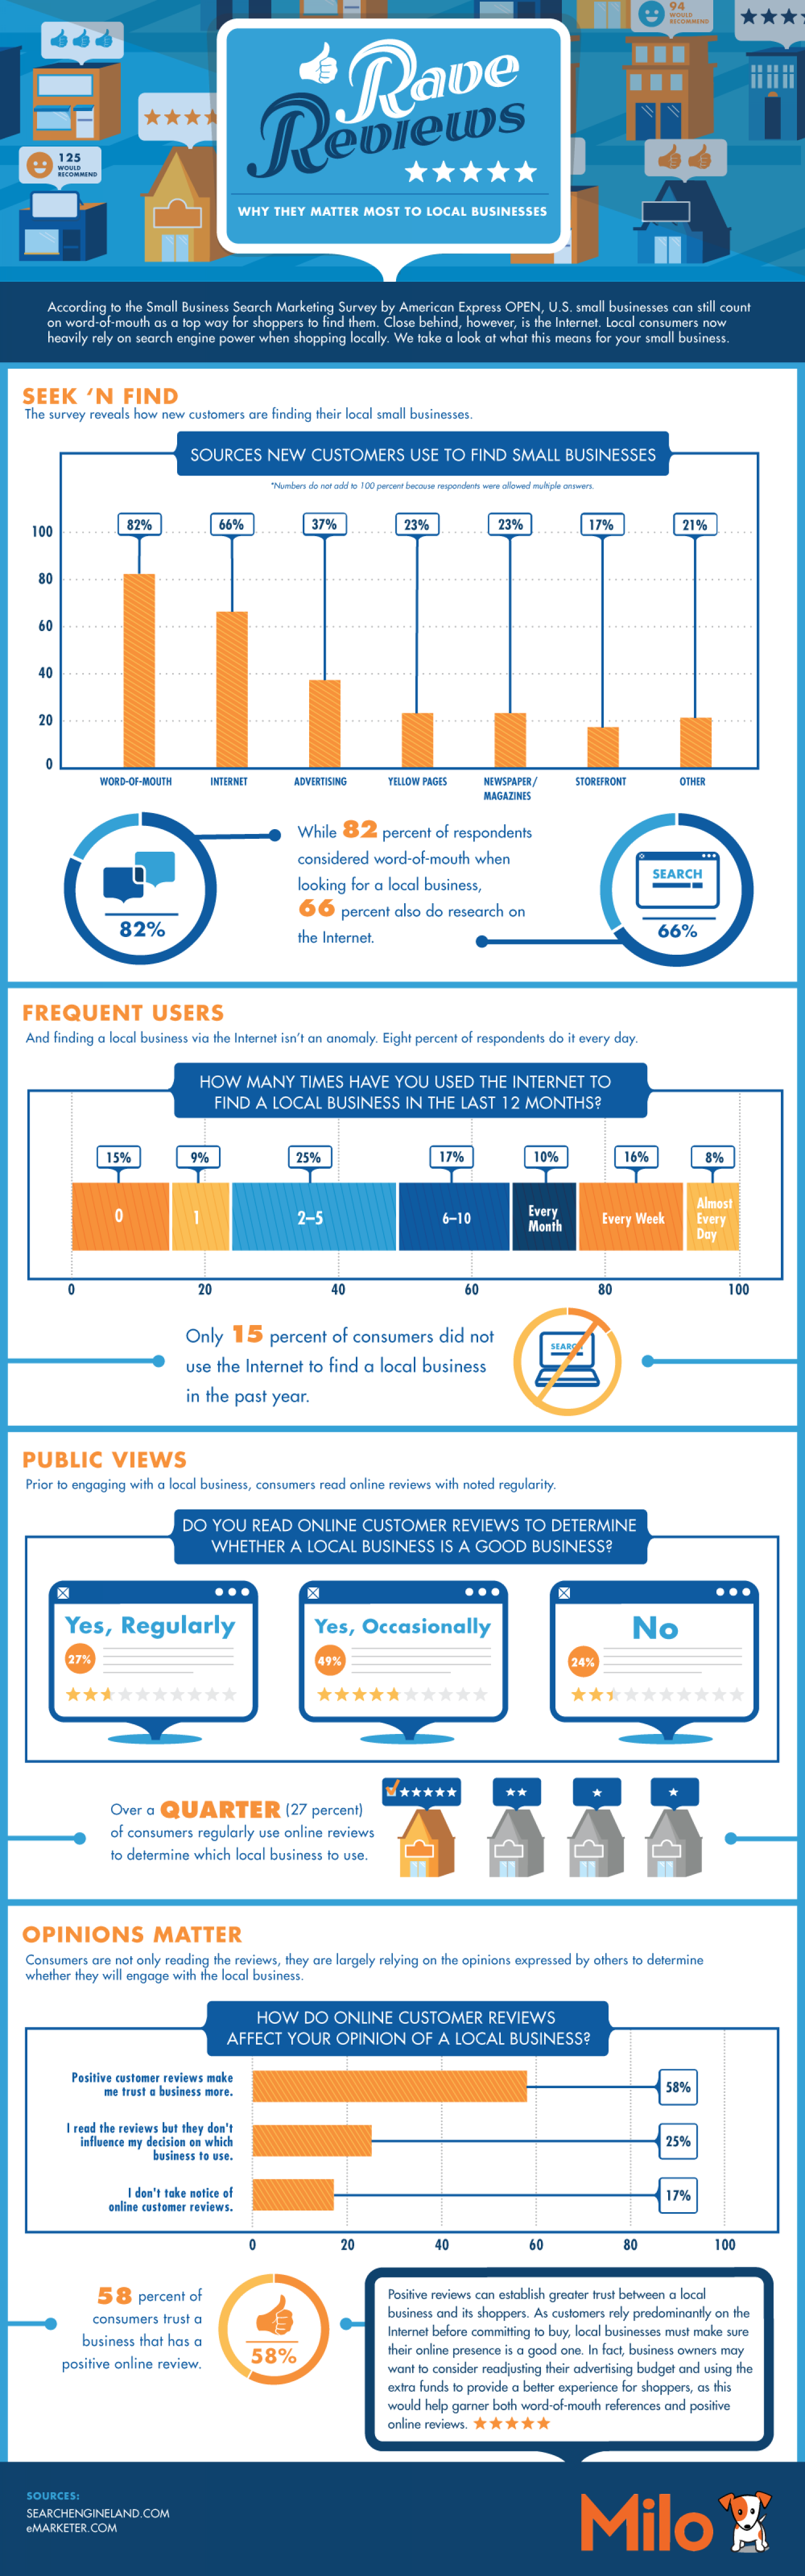 WhyRave Reviews: Why Do They Matter Most to Local Businesses  Infographic